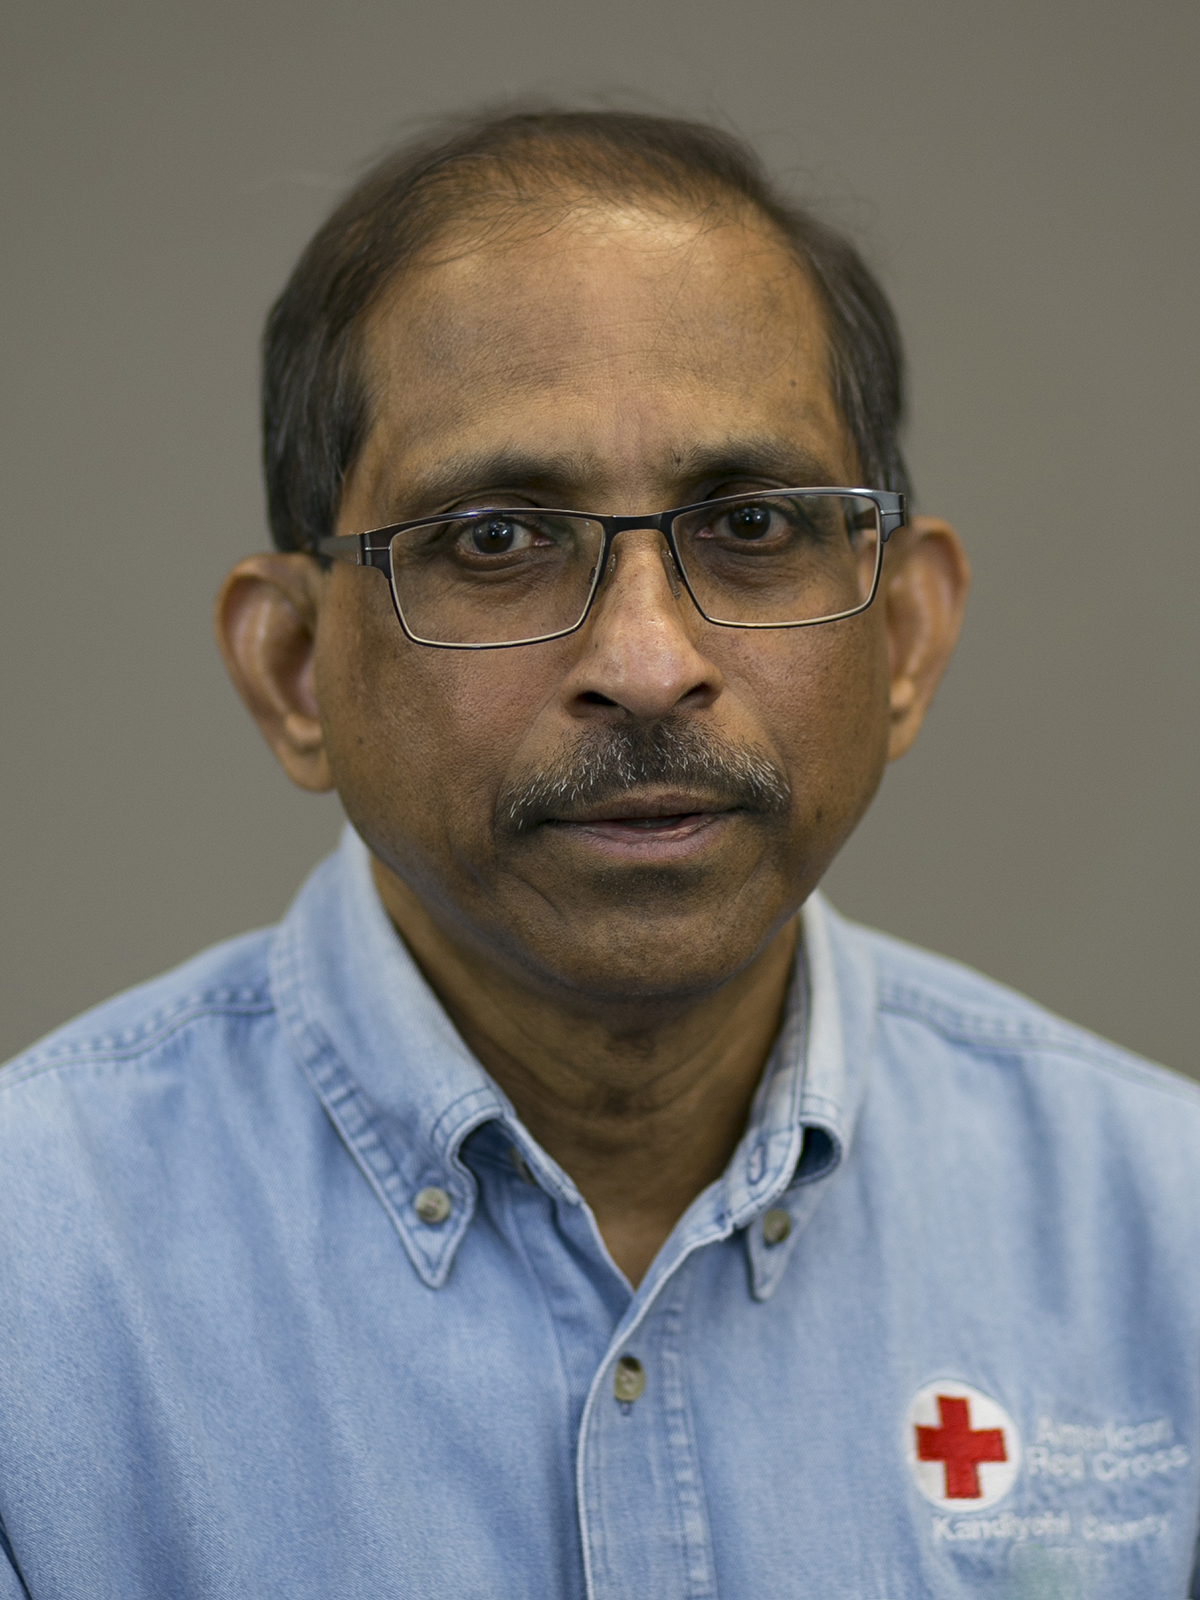 Gajendranathan Ramanathan, Accounting Instructor